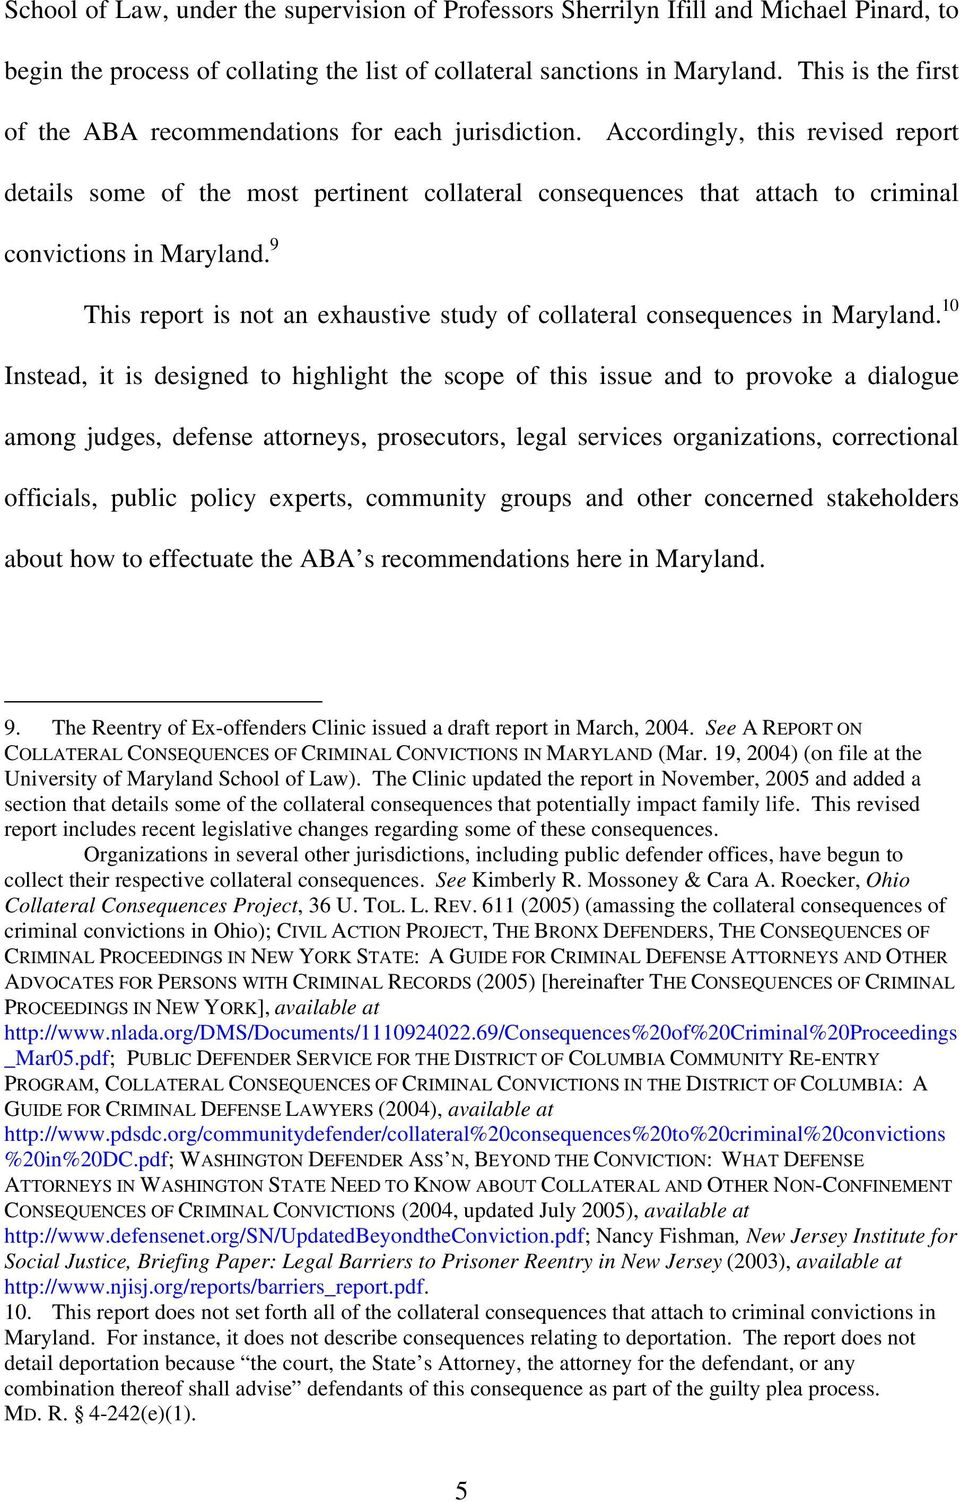 Accordingly, this revised report details some of the most pertinent collateral consequences that attach to criminal convictions in Maryland.